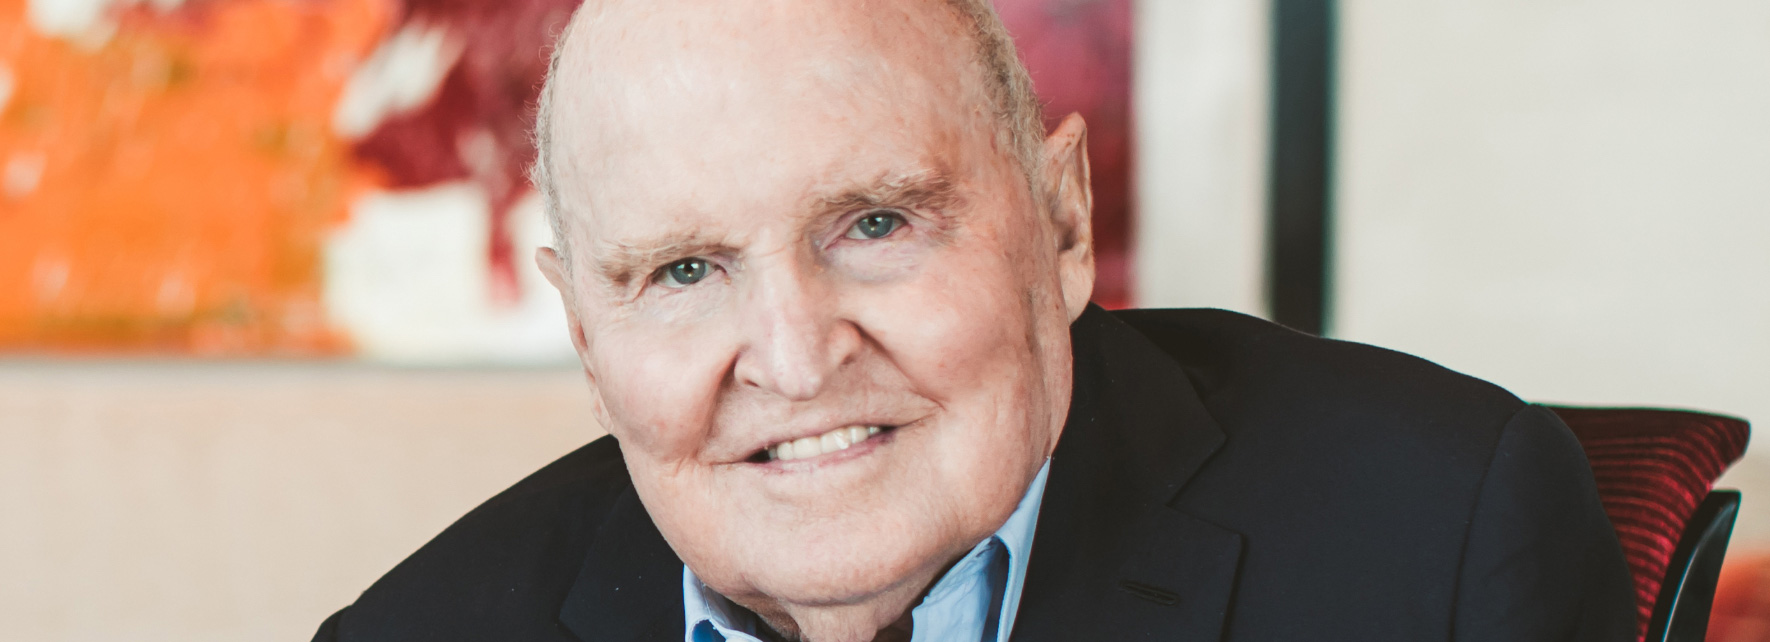 Jack Welch smiling